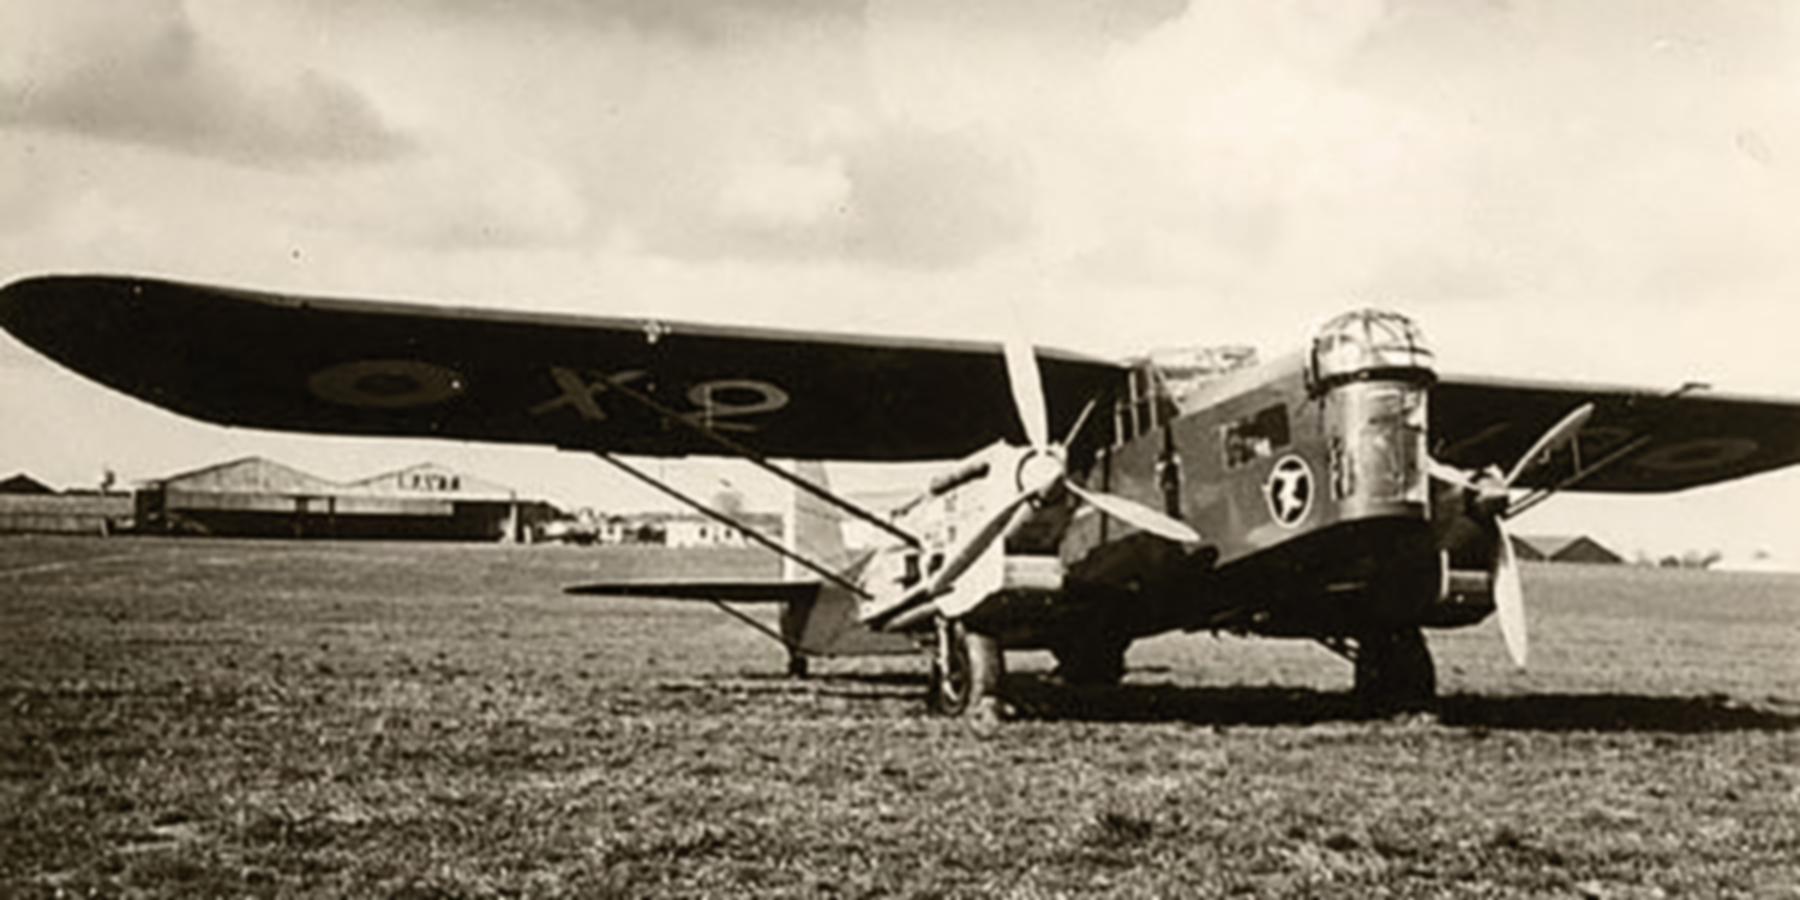 French Airforce Potez 540 at a French airbase France 1940 ebay 01